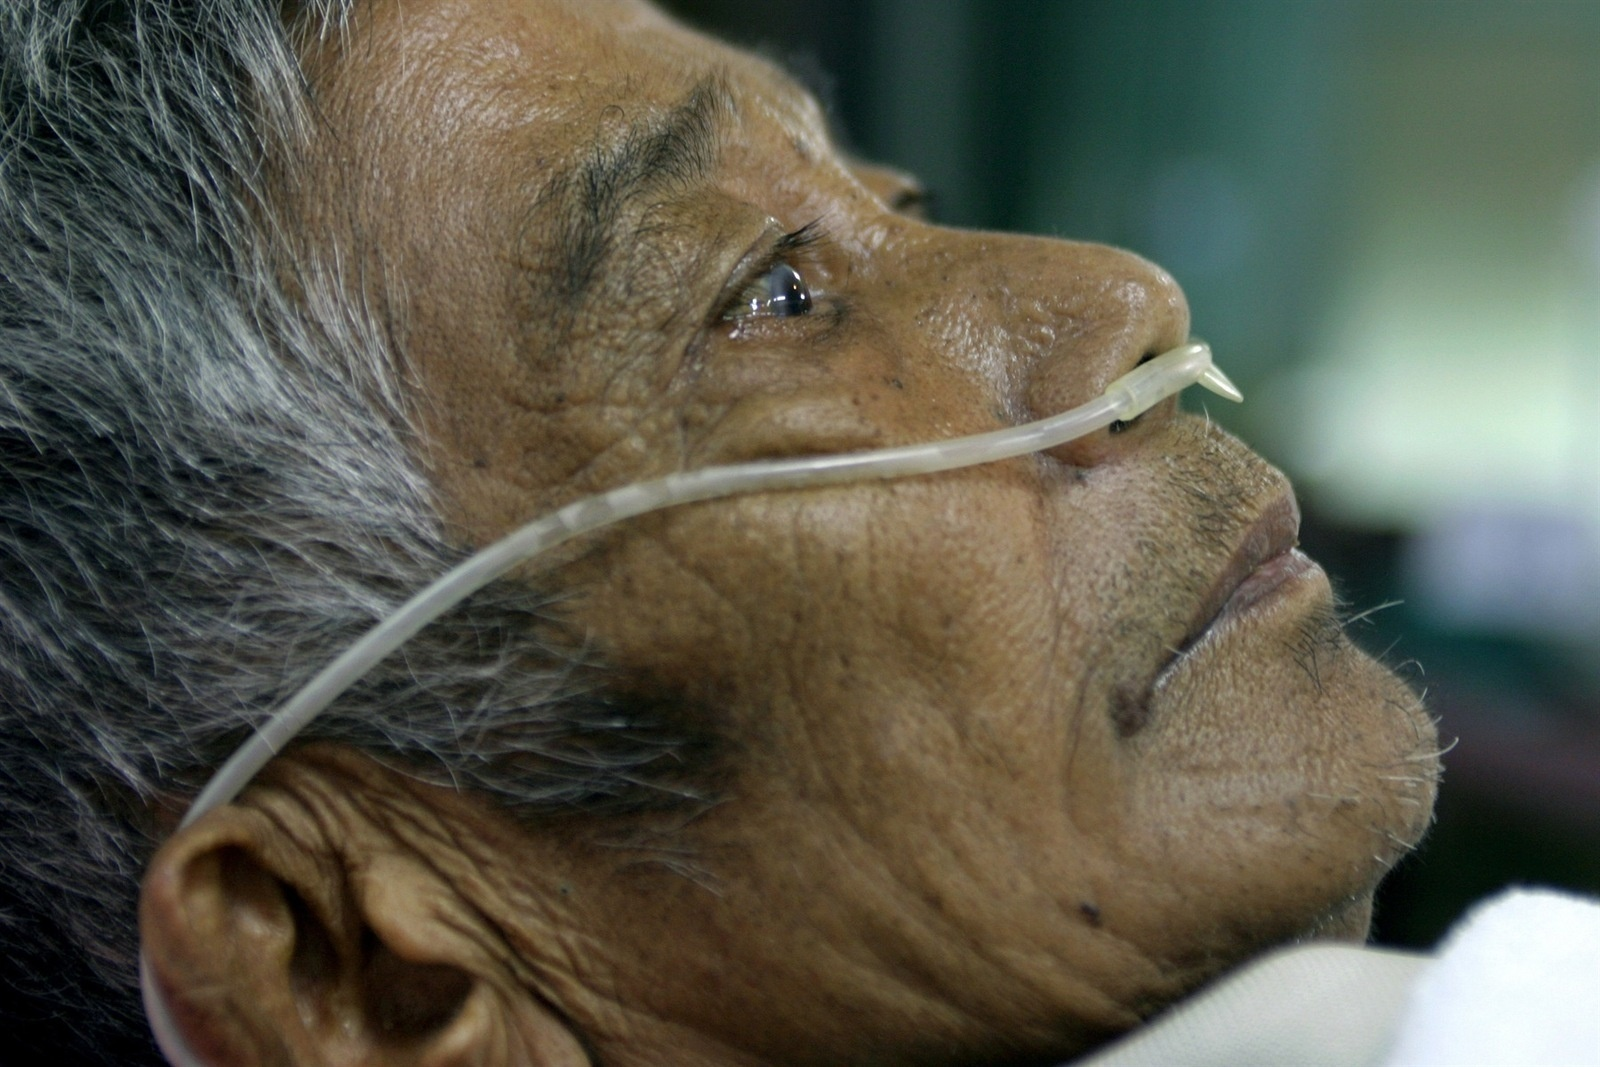 Khun Duong Panyaraew lies on a hospital bed in Mae Moh district. He has been diagnosed with Chronic Obstructive Pulmonary Disease. Environmental activists and villagers in the Mae Moh area believe that emissions from  the Mae Moh power plant are the principal cause of respiratory disease in this area. An abnormal number of villagers in vicinity of the power plant are dying of respiratory related illnesses. Mae Moh district in northern Thailand's Lampang province is home to Southeast Asia's largest lignite fired power generating facility. Villagers in the area have long complained that the plant, which supplies north and northeast Thailand with power, is contaminating the surrounding area and poses a hazard to their health as well as damaging agricultural land.  The Mae Moh Power Plant, as it is known, began operations about 30 years ago and, despite being dogged by accusations of excessive pollution and evidence that locals are suffering respiratory problems as a result of burn-off from the plant, has continued to expand production.  Environmental activists in Thailand and elsewhere see the plant as an example of unclean power technology that should not be repeated in other countries. Proponents of coal and lignite plants say it offers cost effective energy with relatively little impact on the environment.